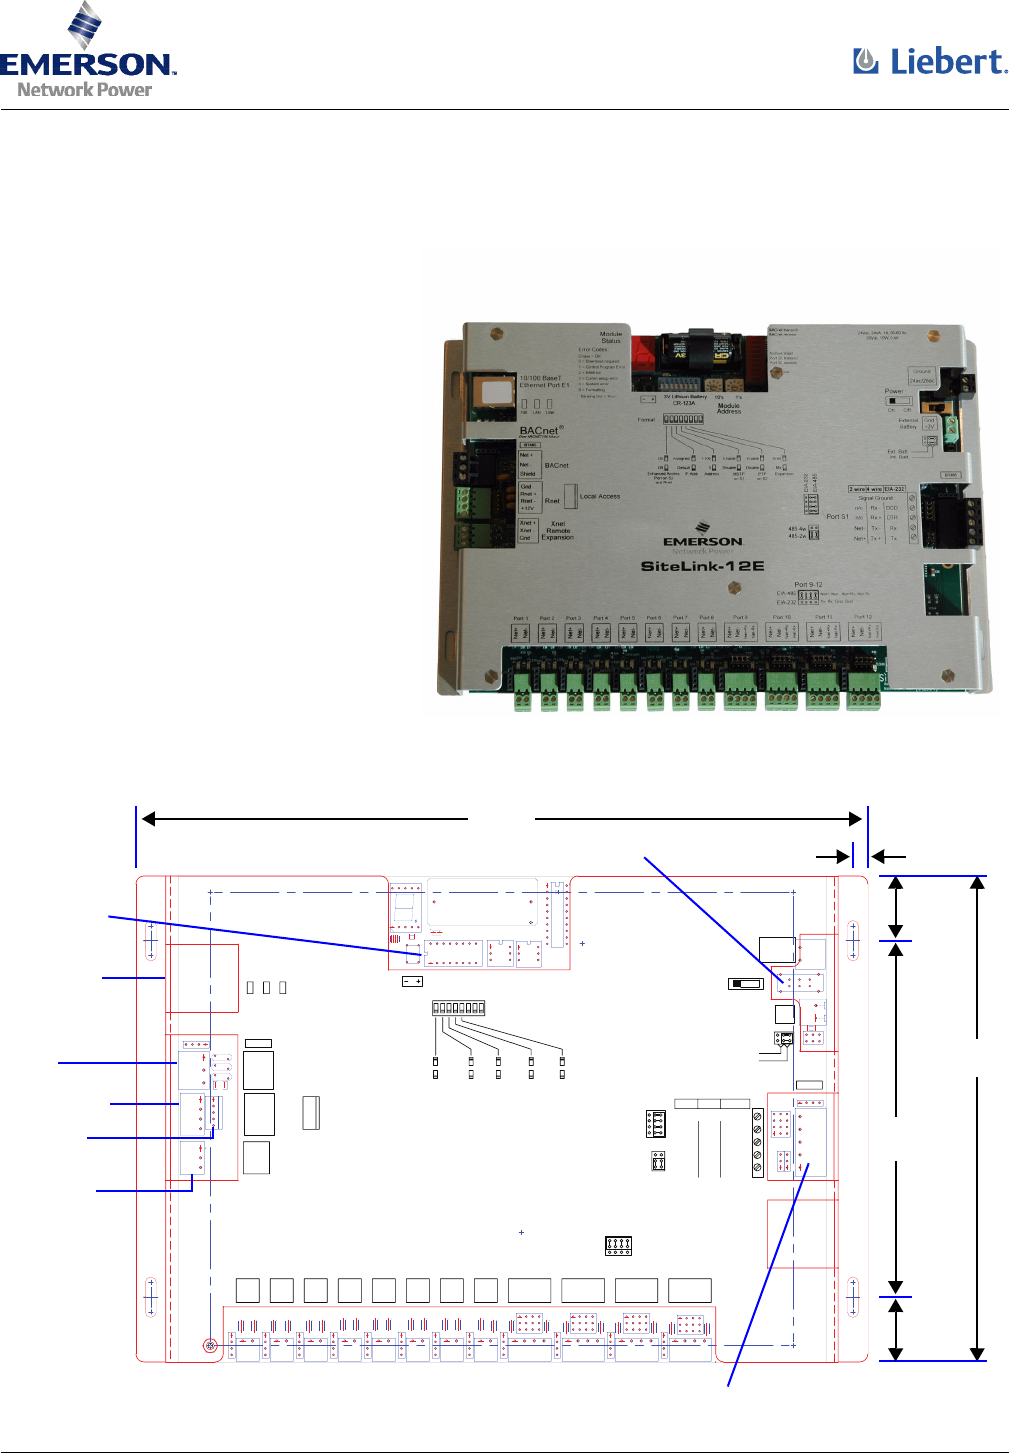 emerson network card sitelink 12e user guide manualsonline com rh office manualsonline com FC to BACnet Wiring-Diagram RS 485 Wiring-Diagram